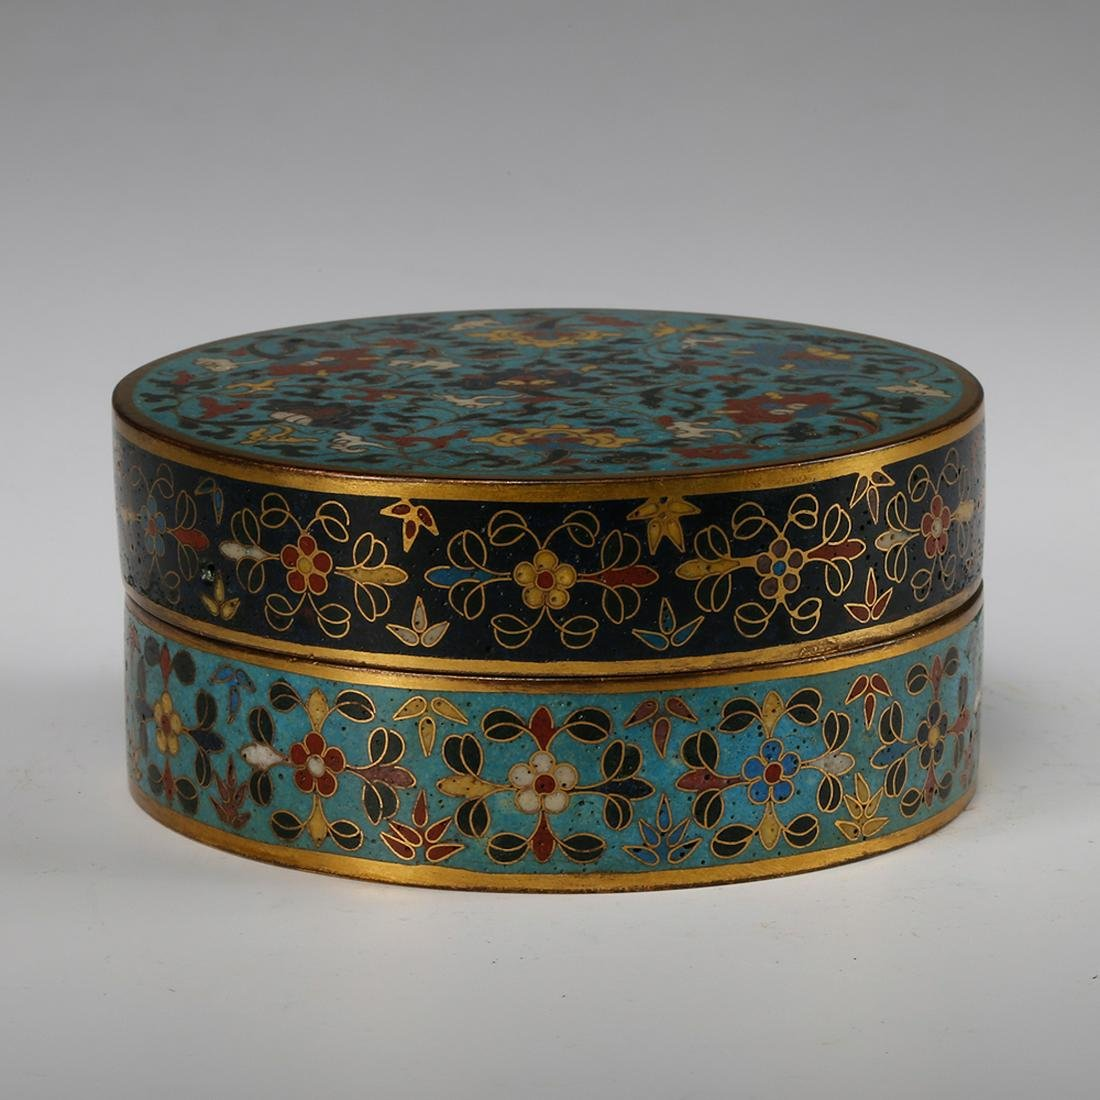 CHINESE CLOISONNE FOLIAGE COVER BOX, QING DYNASTY